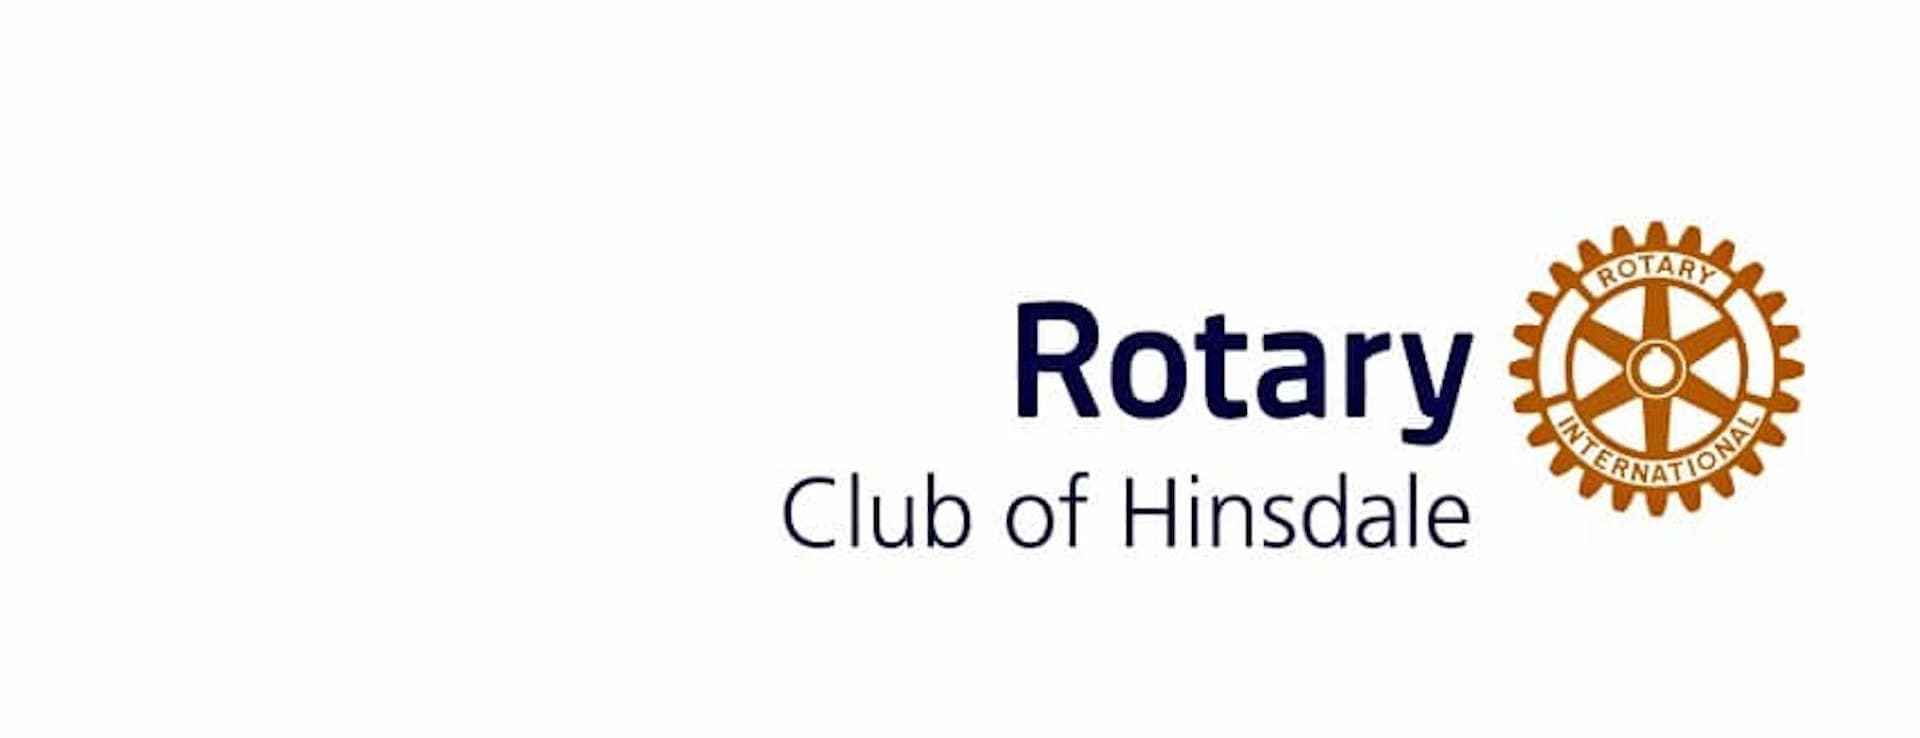 Hinsdale Rotary